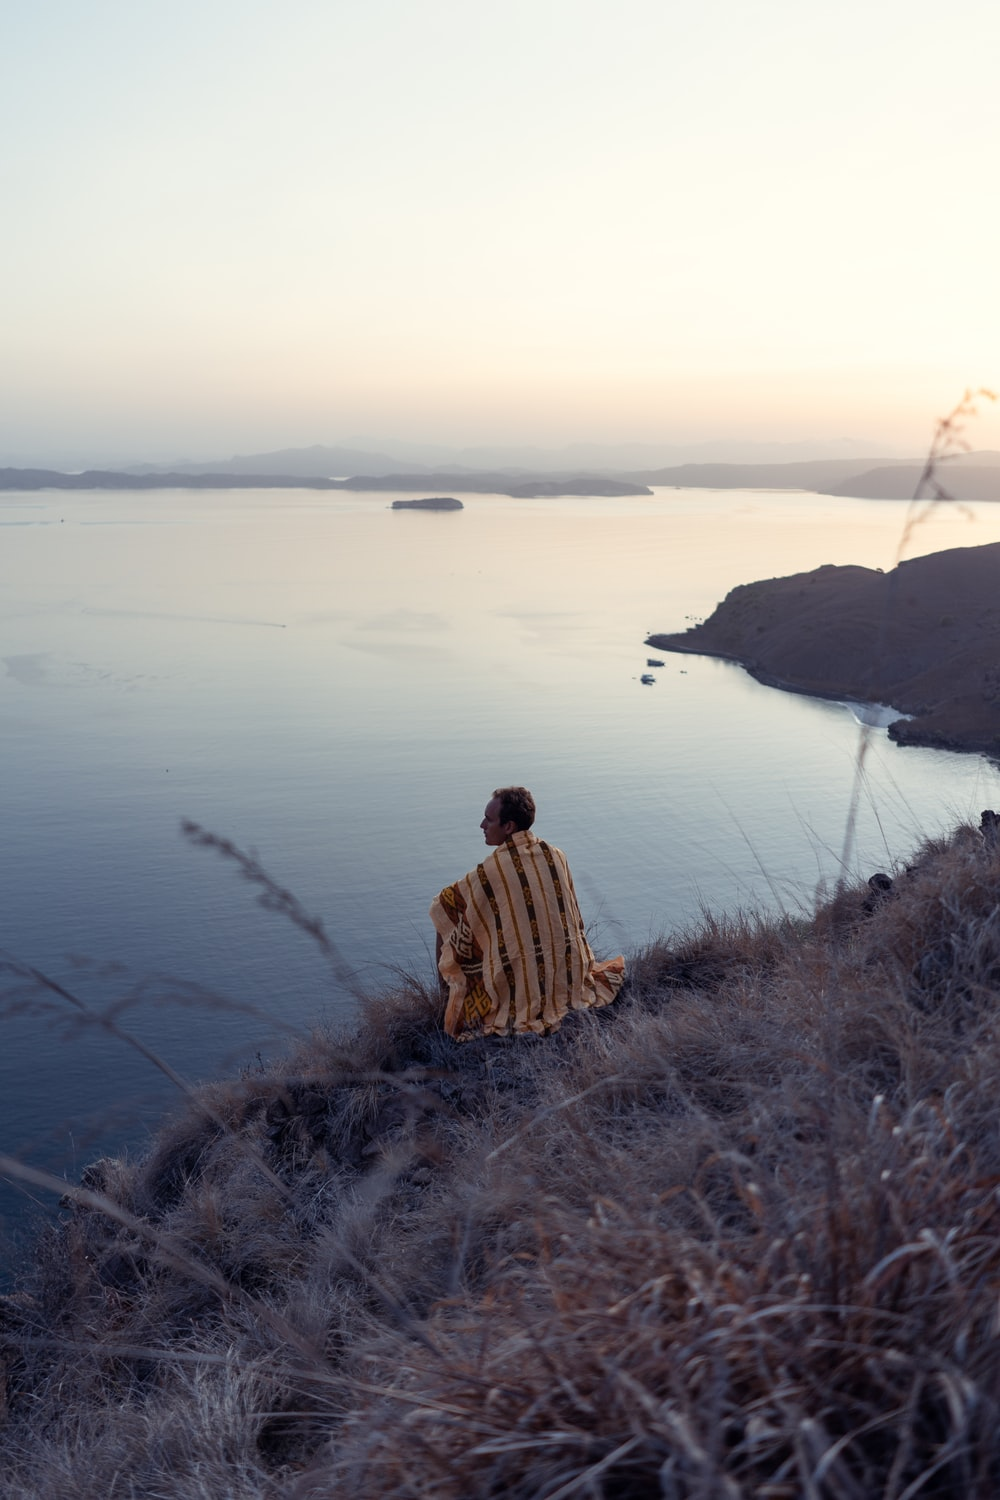 man sitting on cliff near body of water